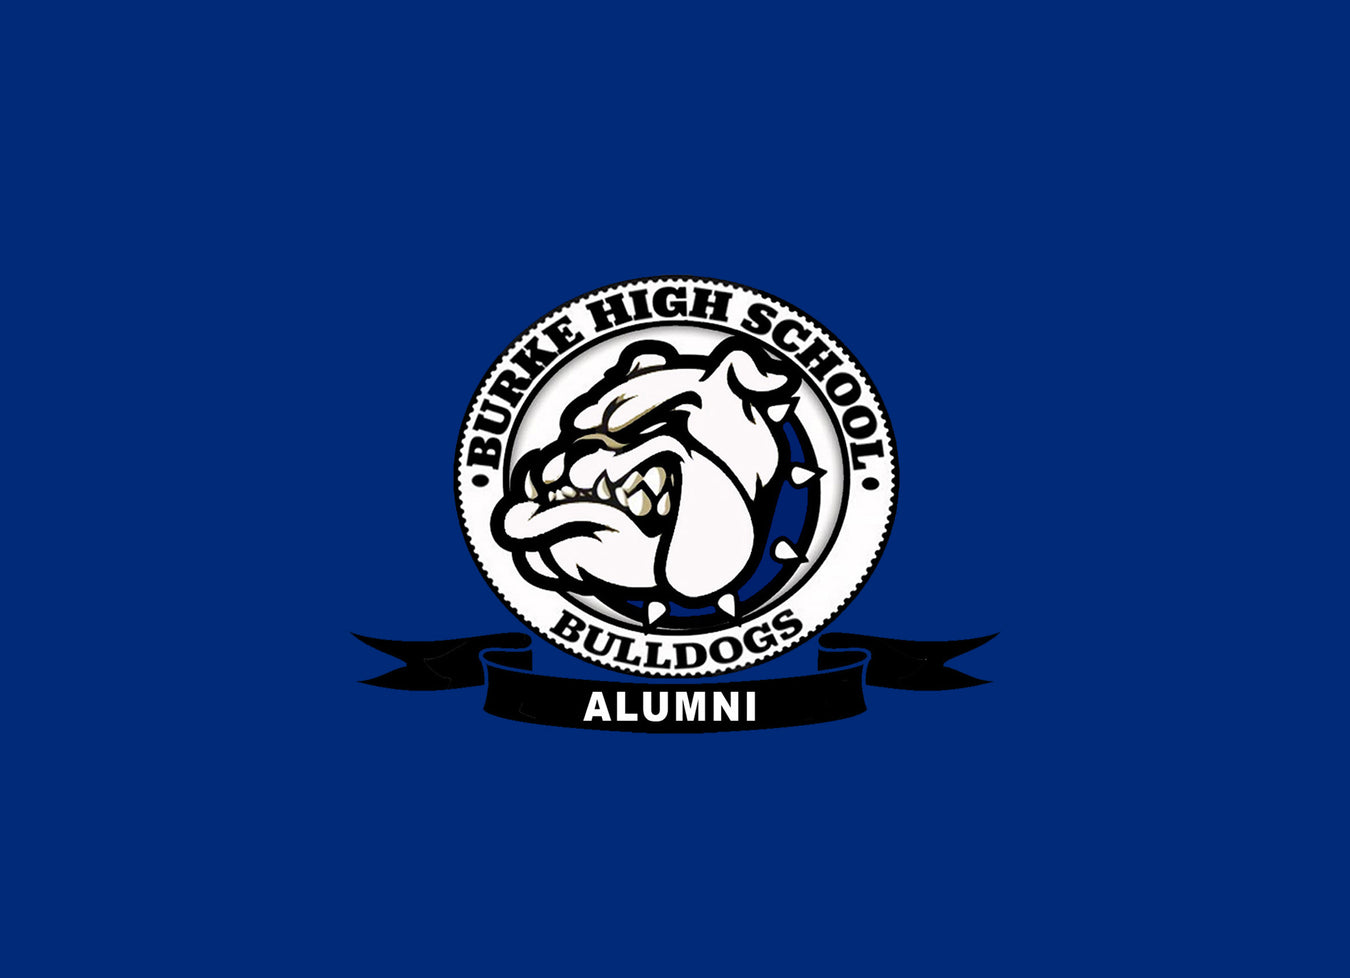 Burke High School Alumni Spirit Store